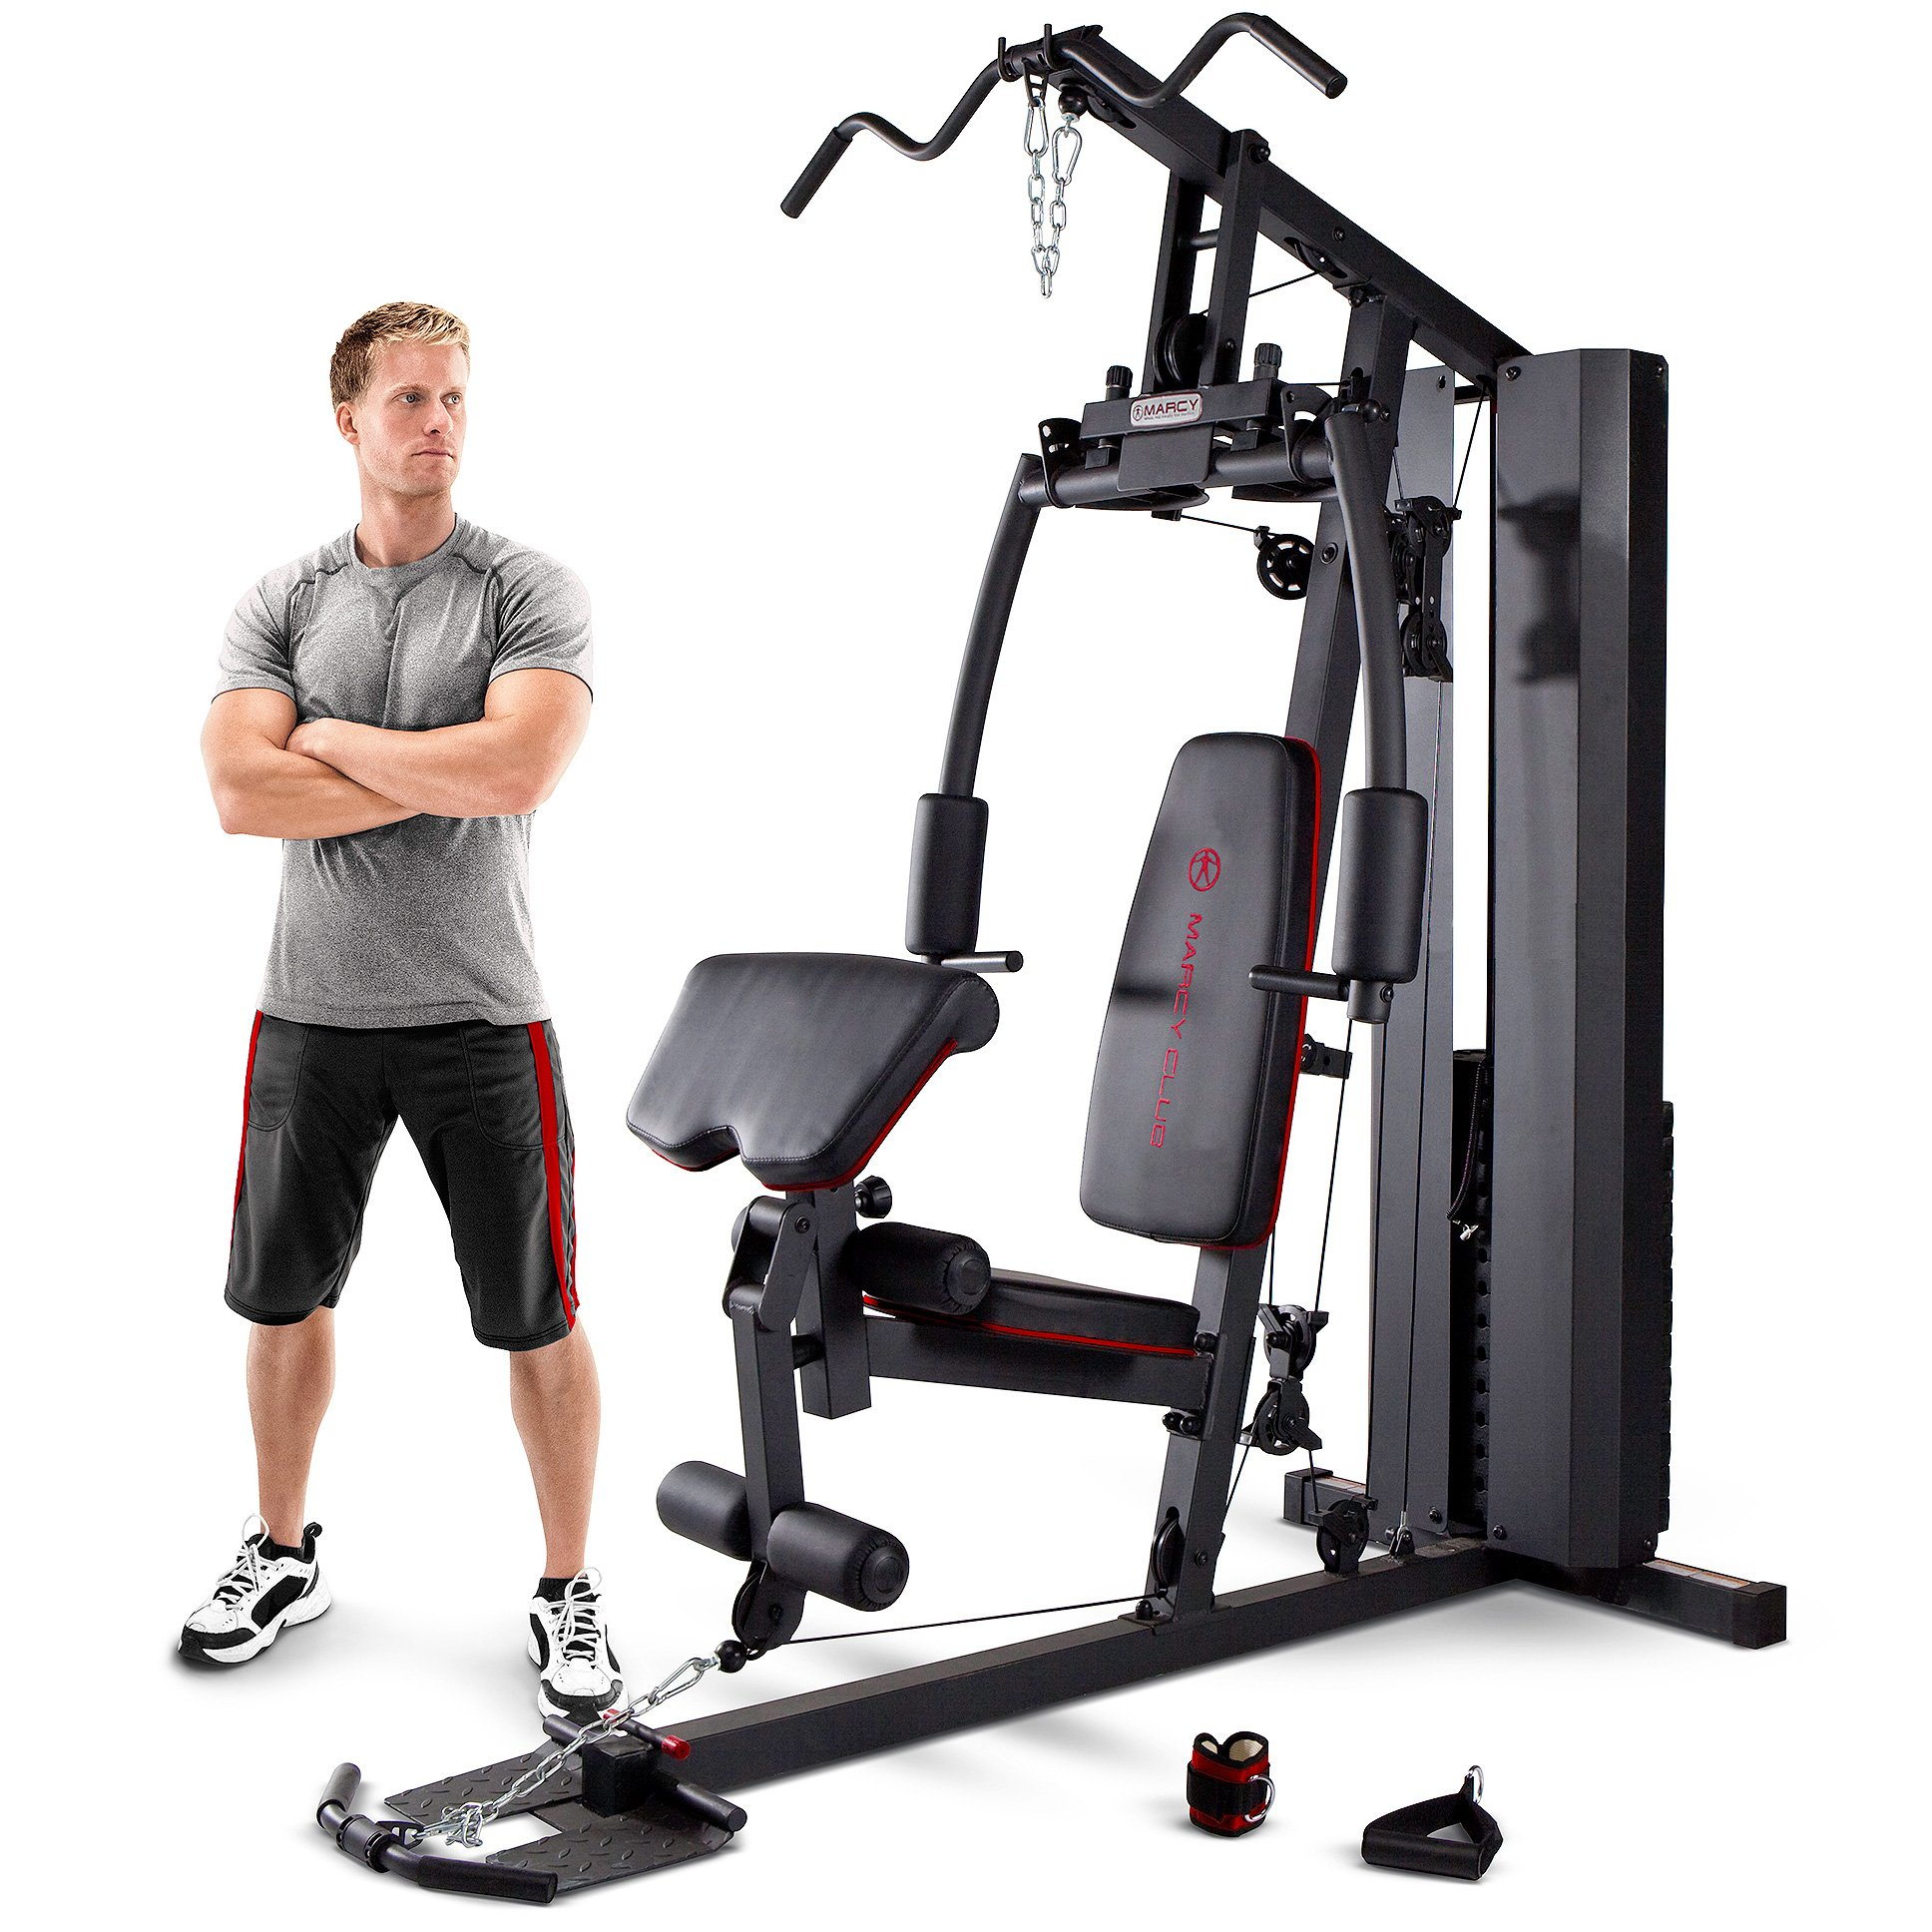 Marcy Mkm 81010 Home Multi Gym With 90 Kg Stack Black